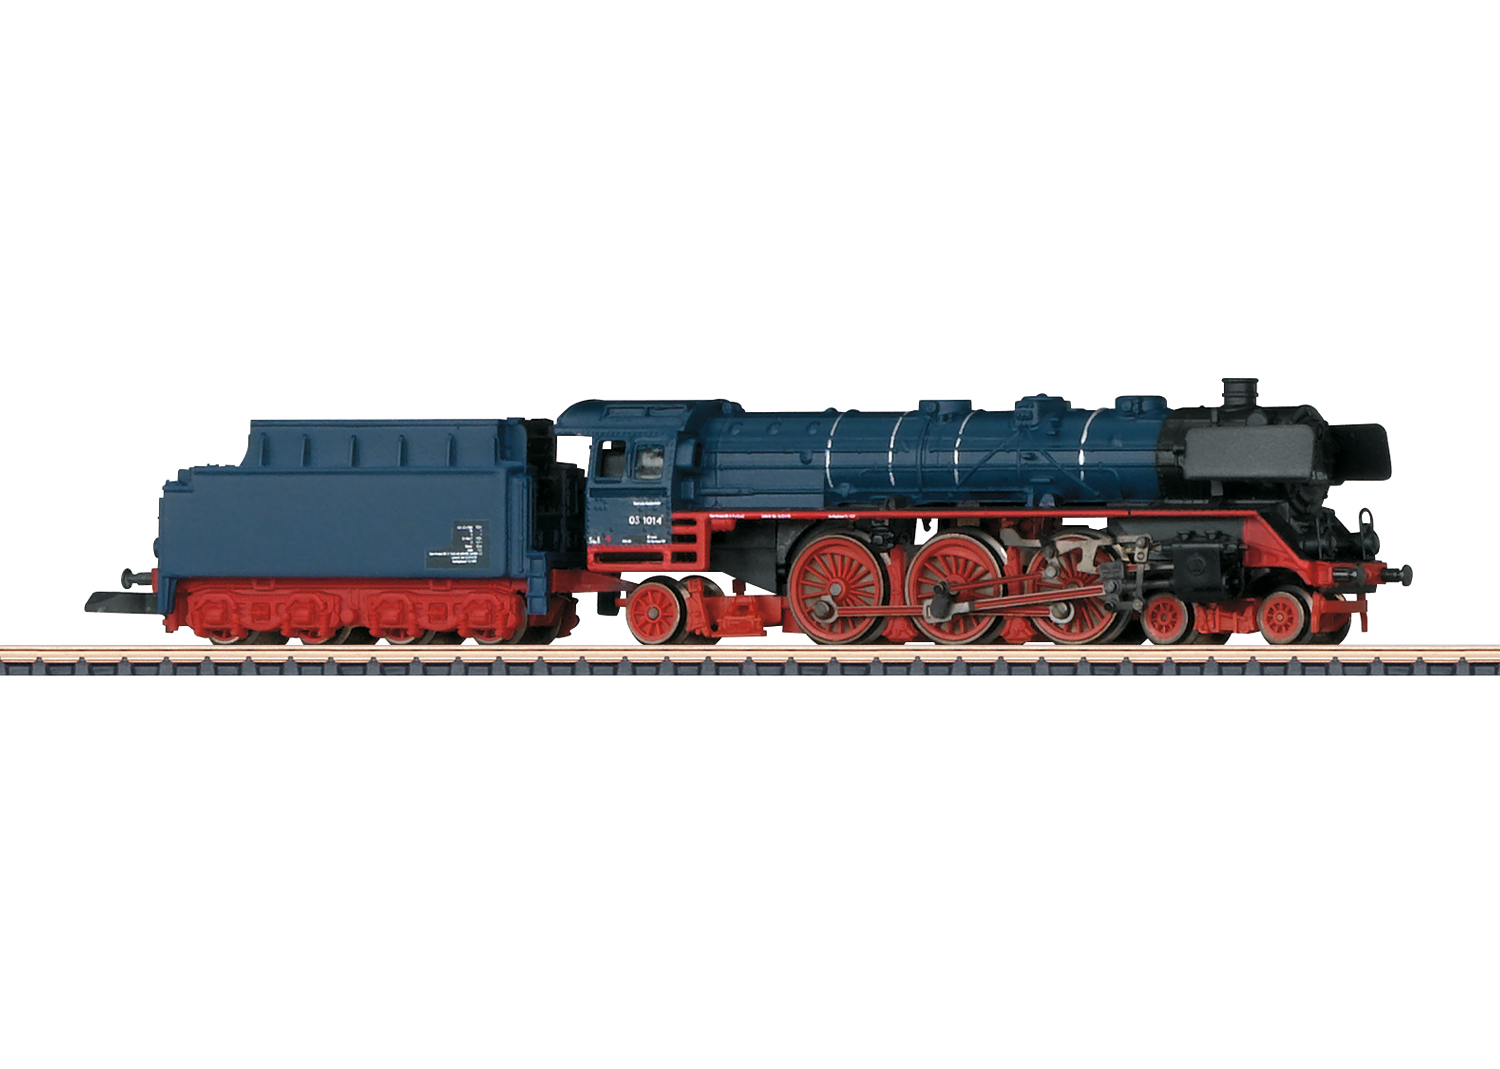 Class 03.10 Express Locomotive with a Tender